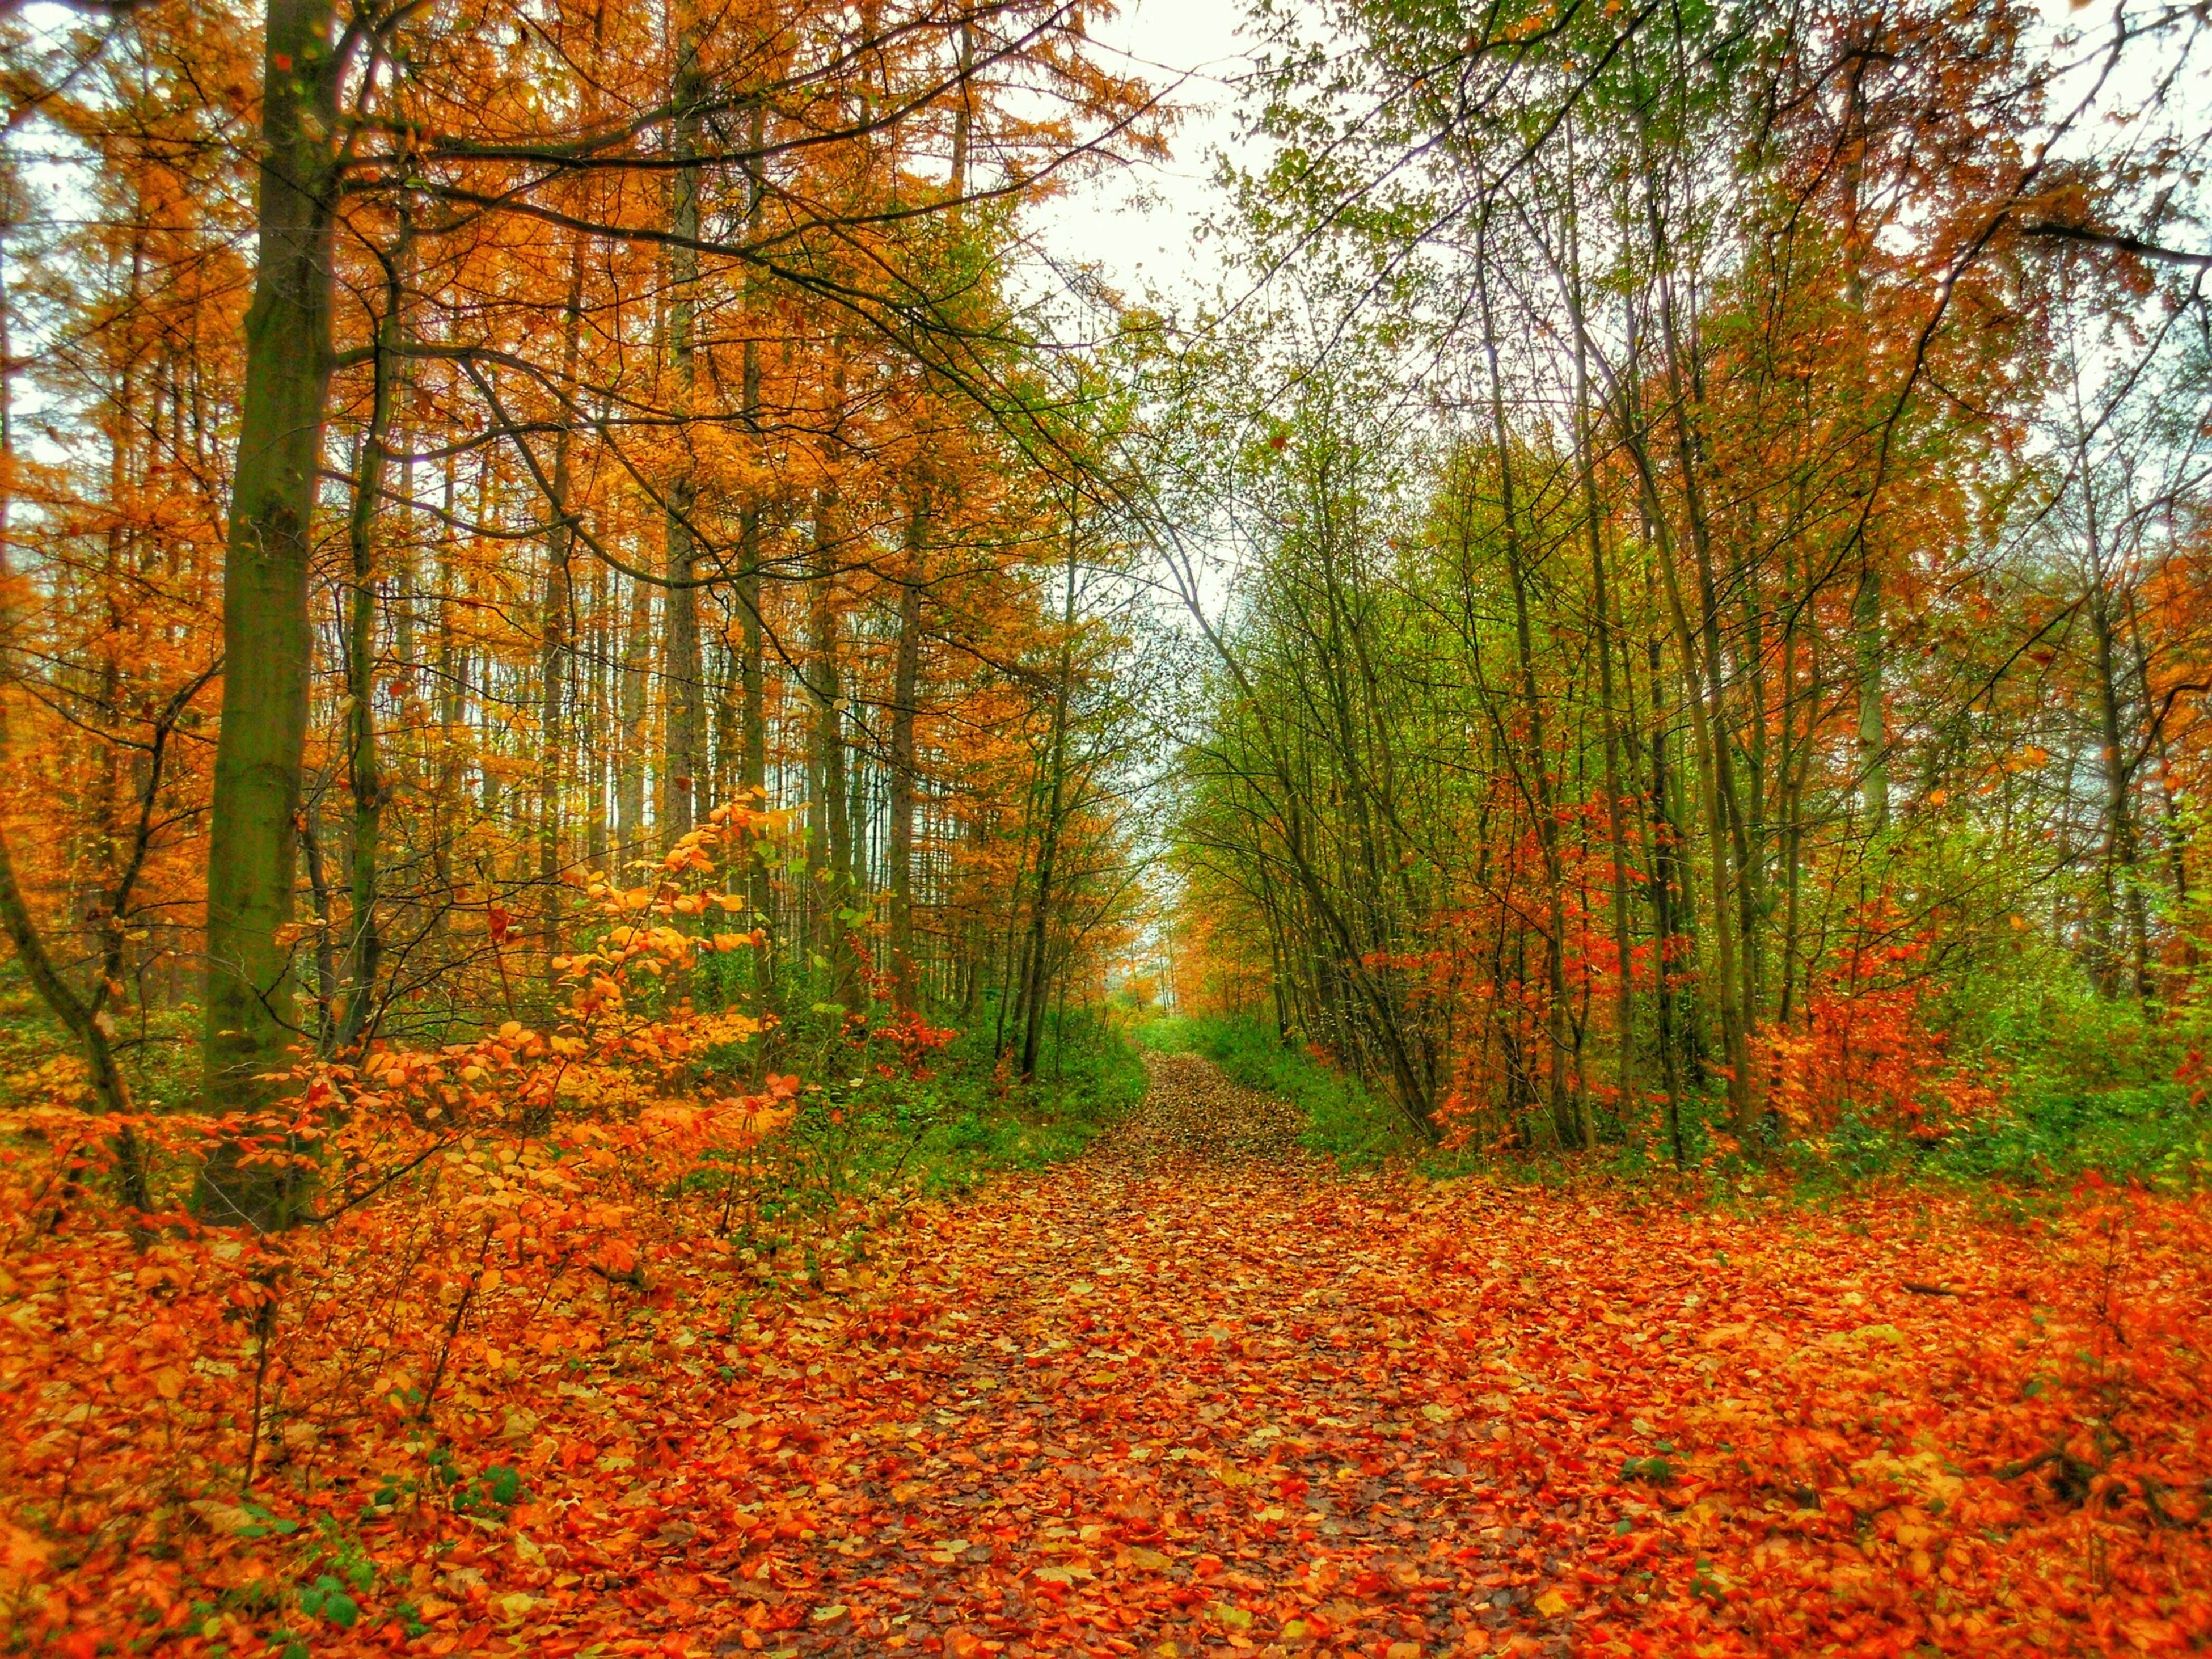 tree, autumn, change, season, tranquility, orange color, growth, beauty in nature, forest, nature, tranquil scene, scenics, leaf, lush foliage, non-urban scene, woodland, day, outdoors, idyllic, no people